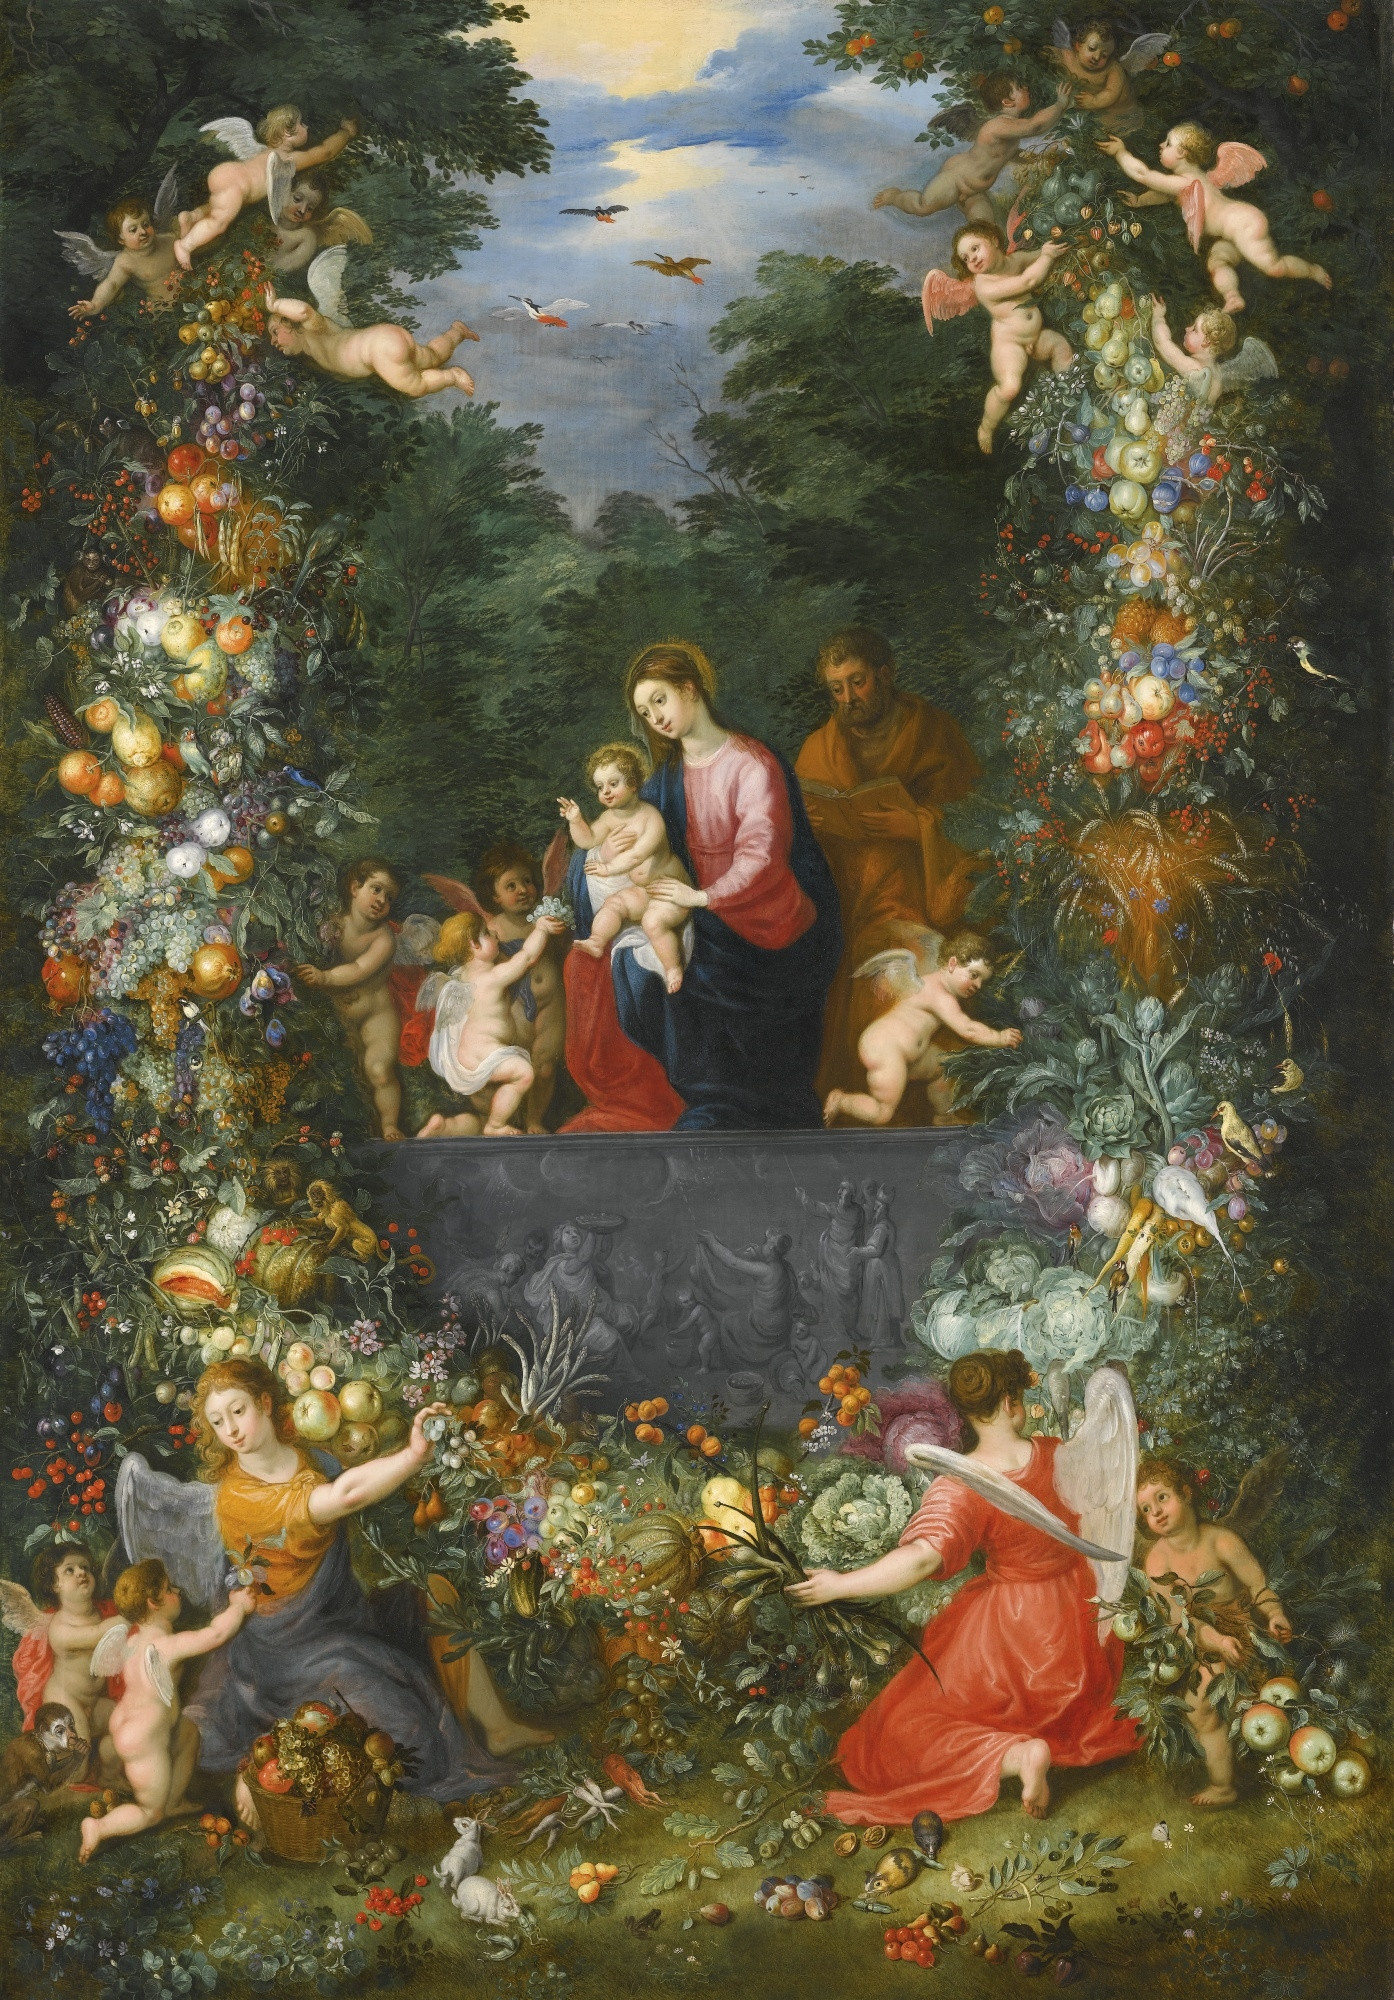 The Holy Family Within a Garland of Fruit, Flowers and Vegetables Held By Angels